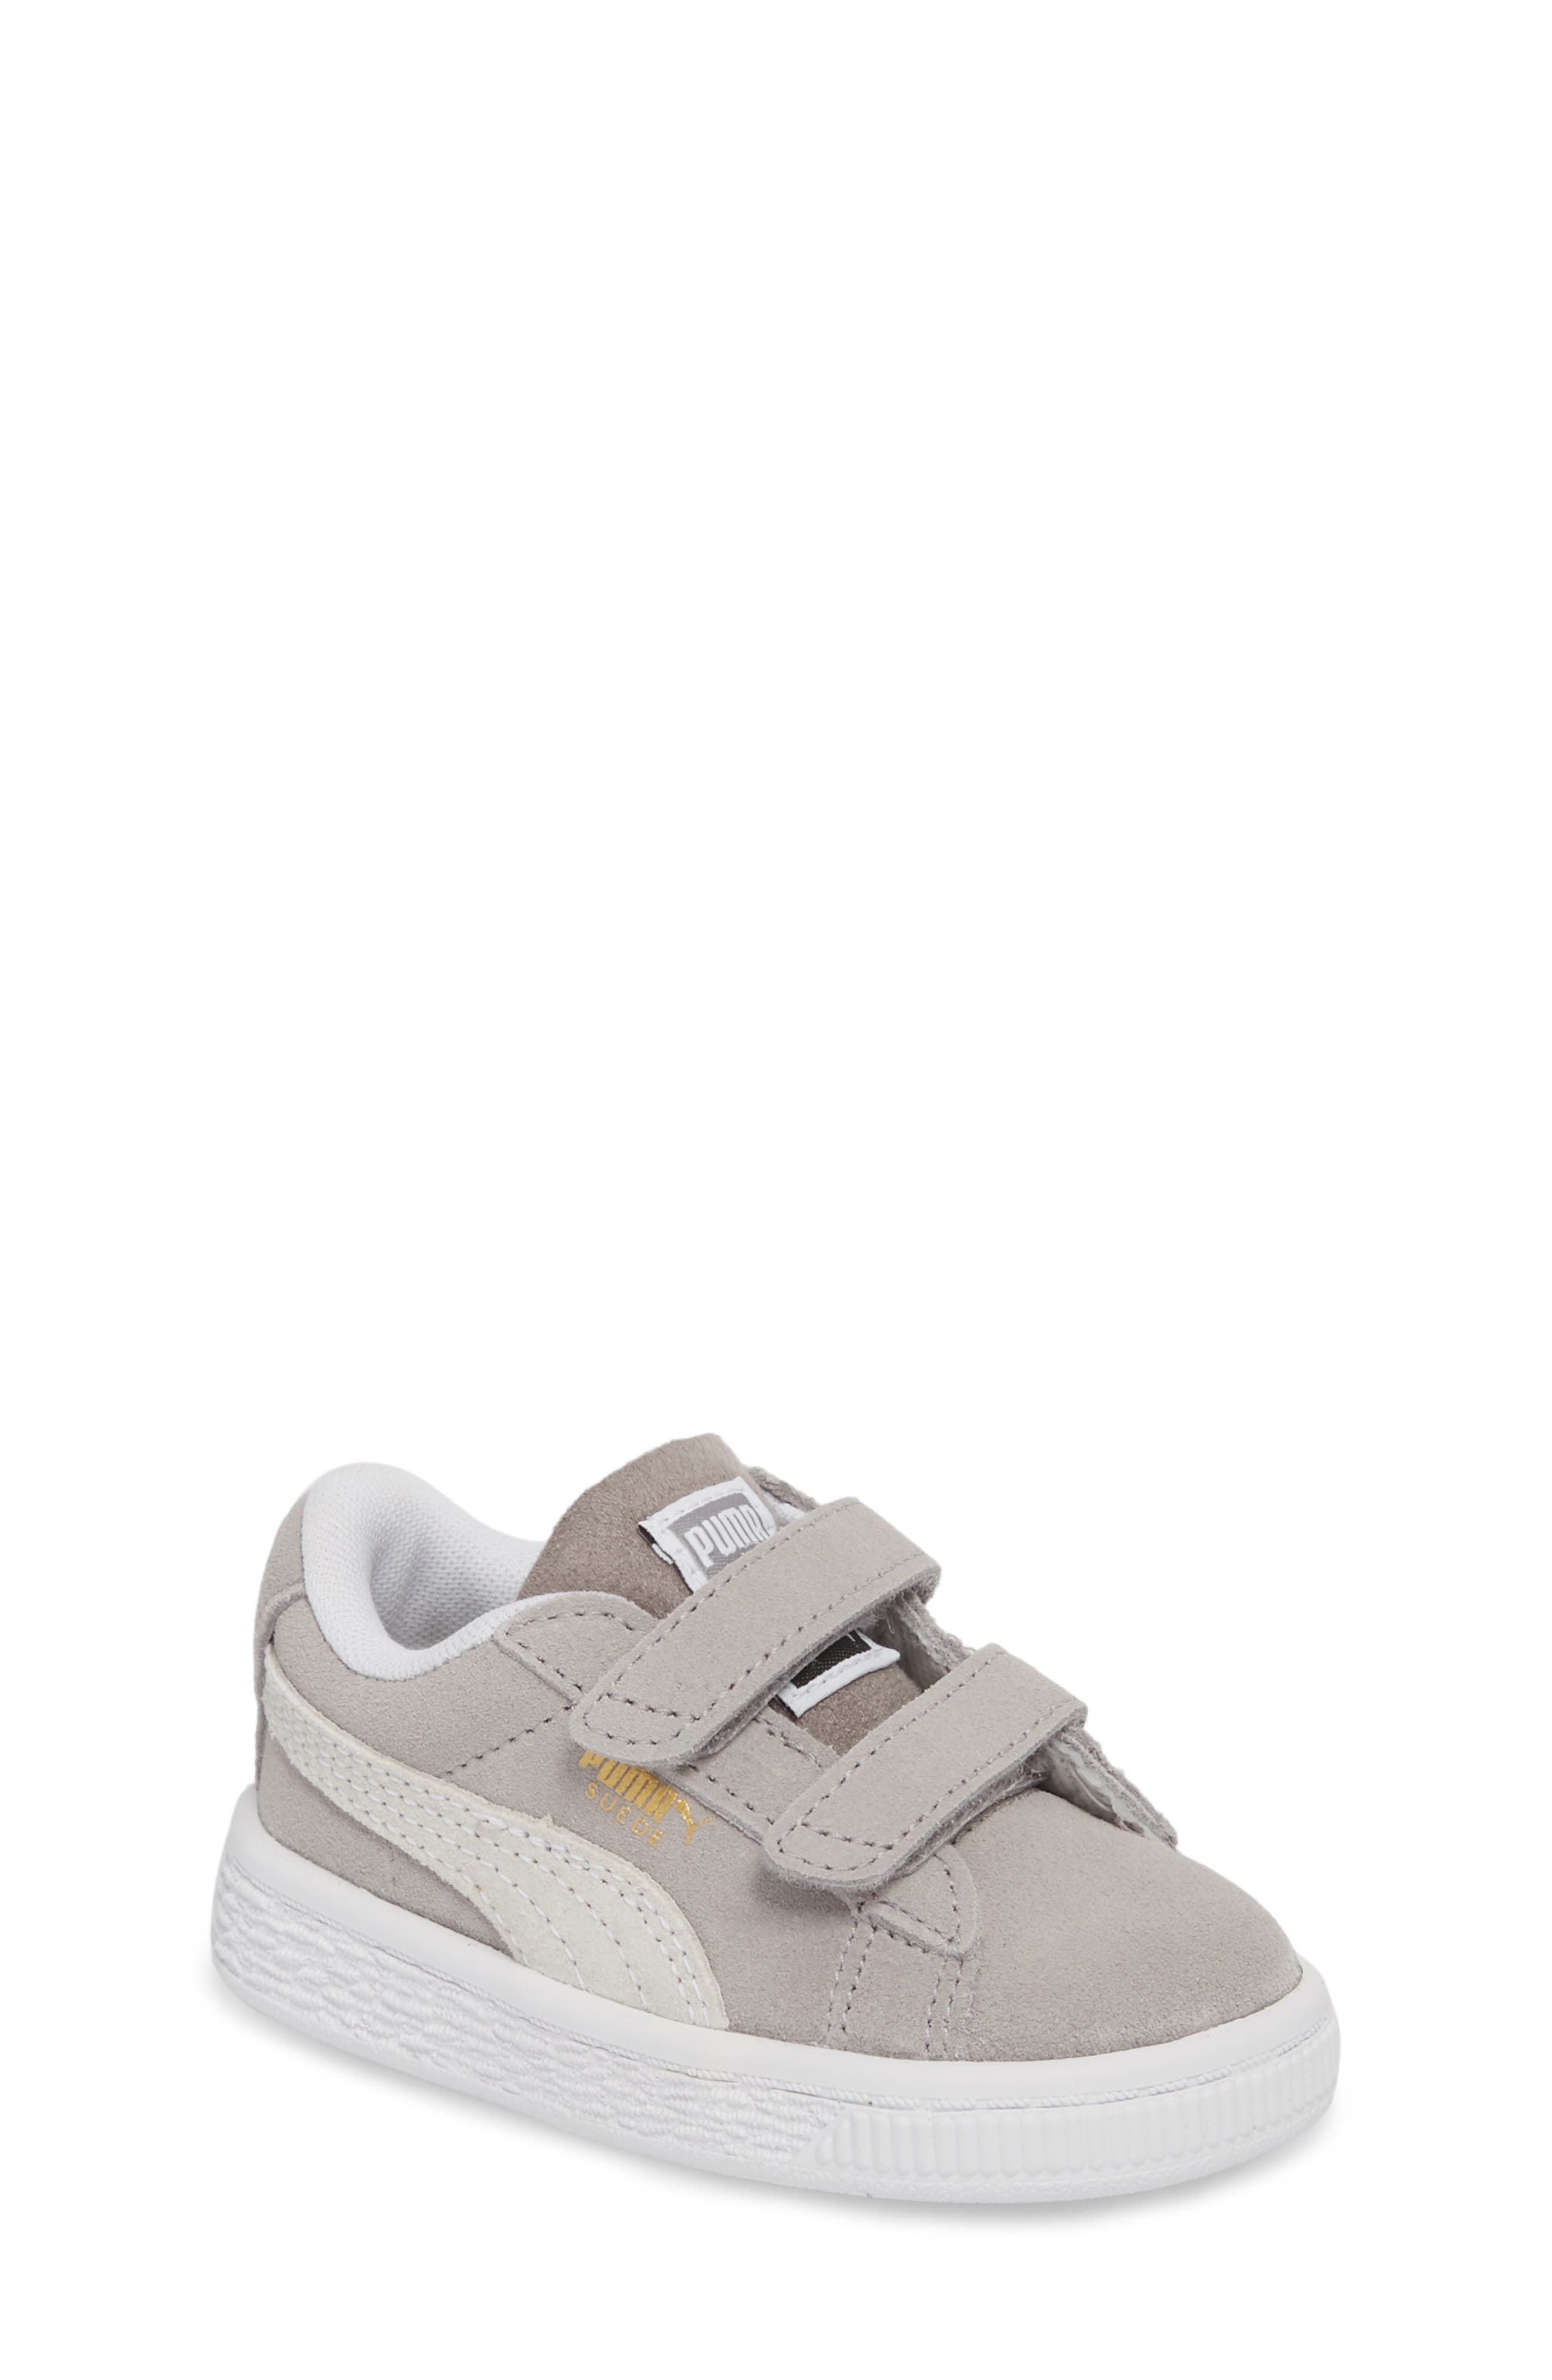 Suede Classic Sneaker,                             Main thumbnail 1, color,                             250